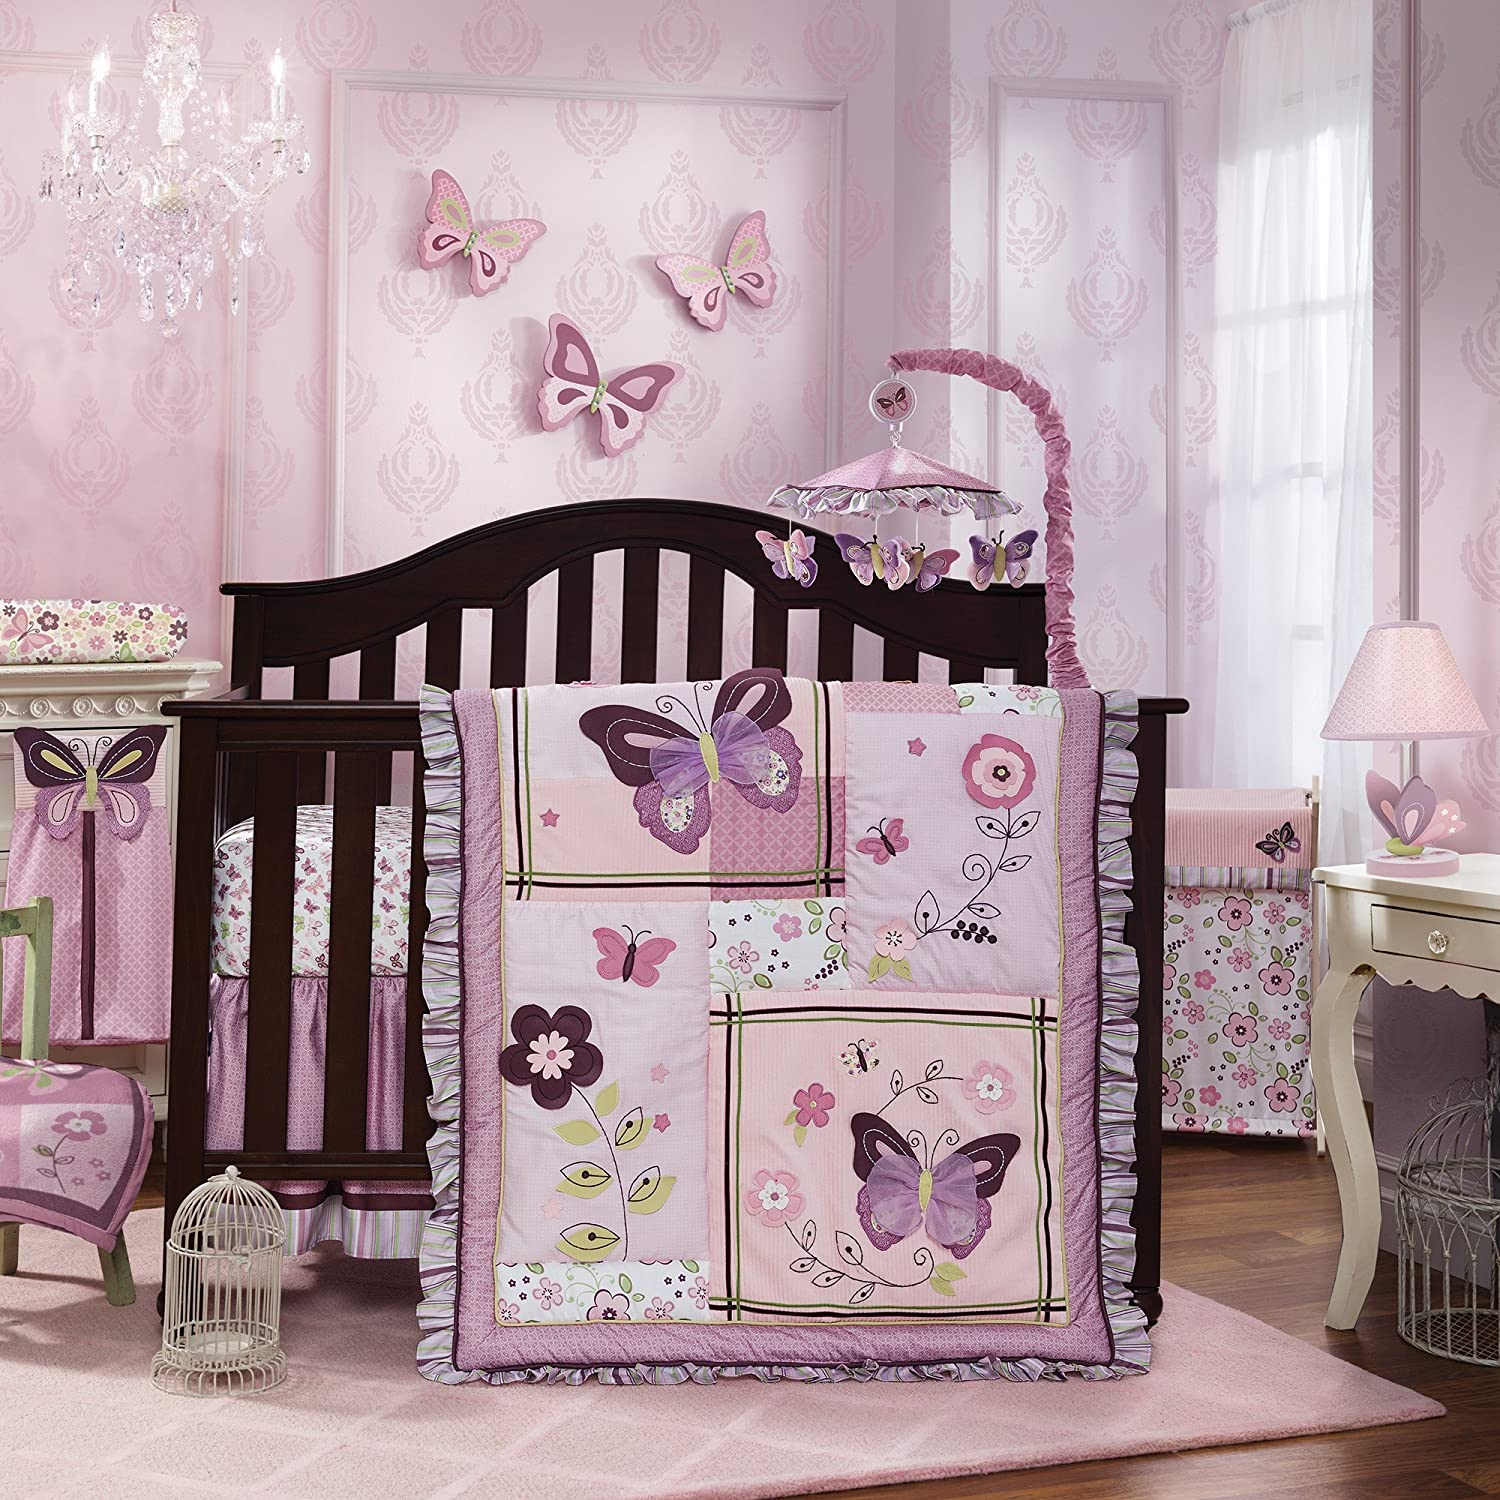 Lambs & Ivy Butterfly Bloom 6 Piece Bedding Set 084122575066